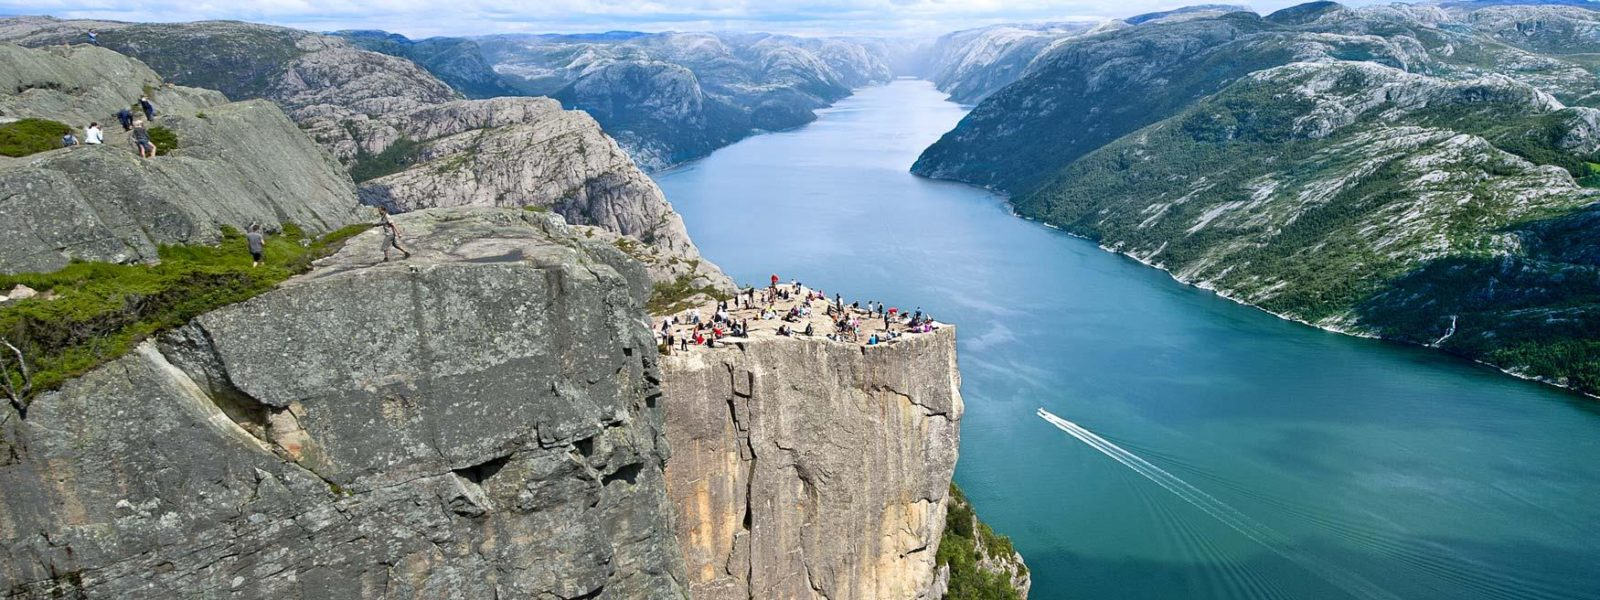 lysefjord-norge